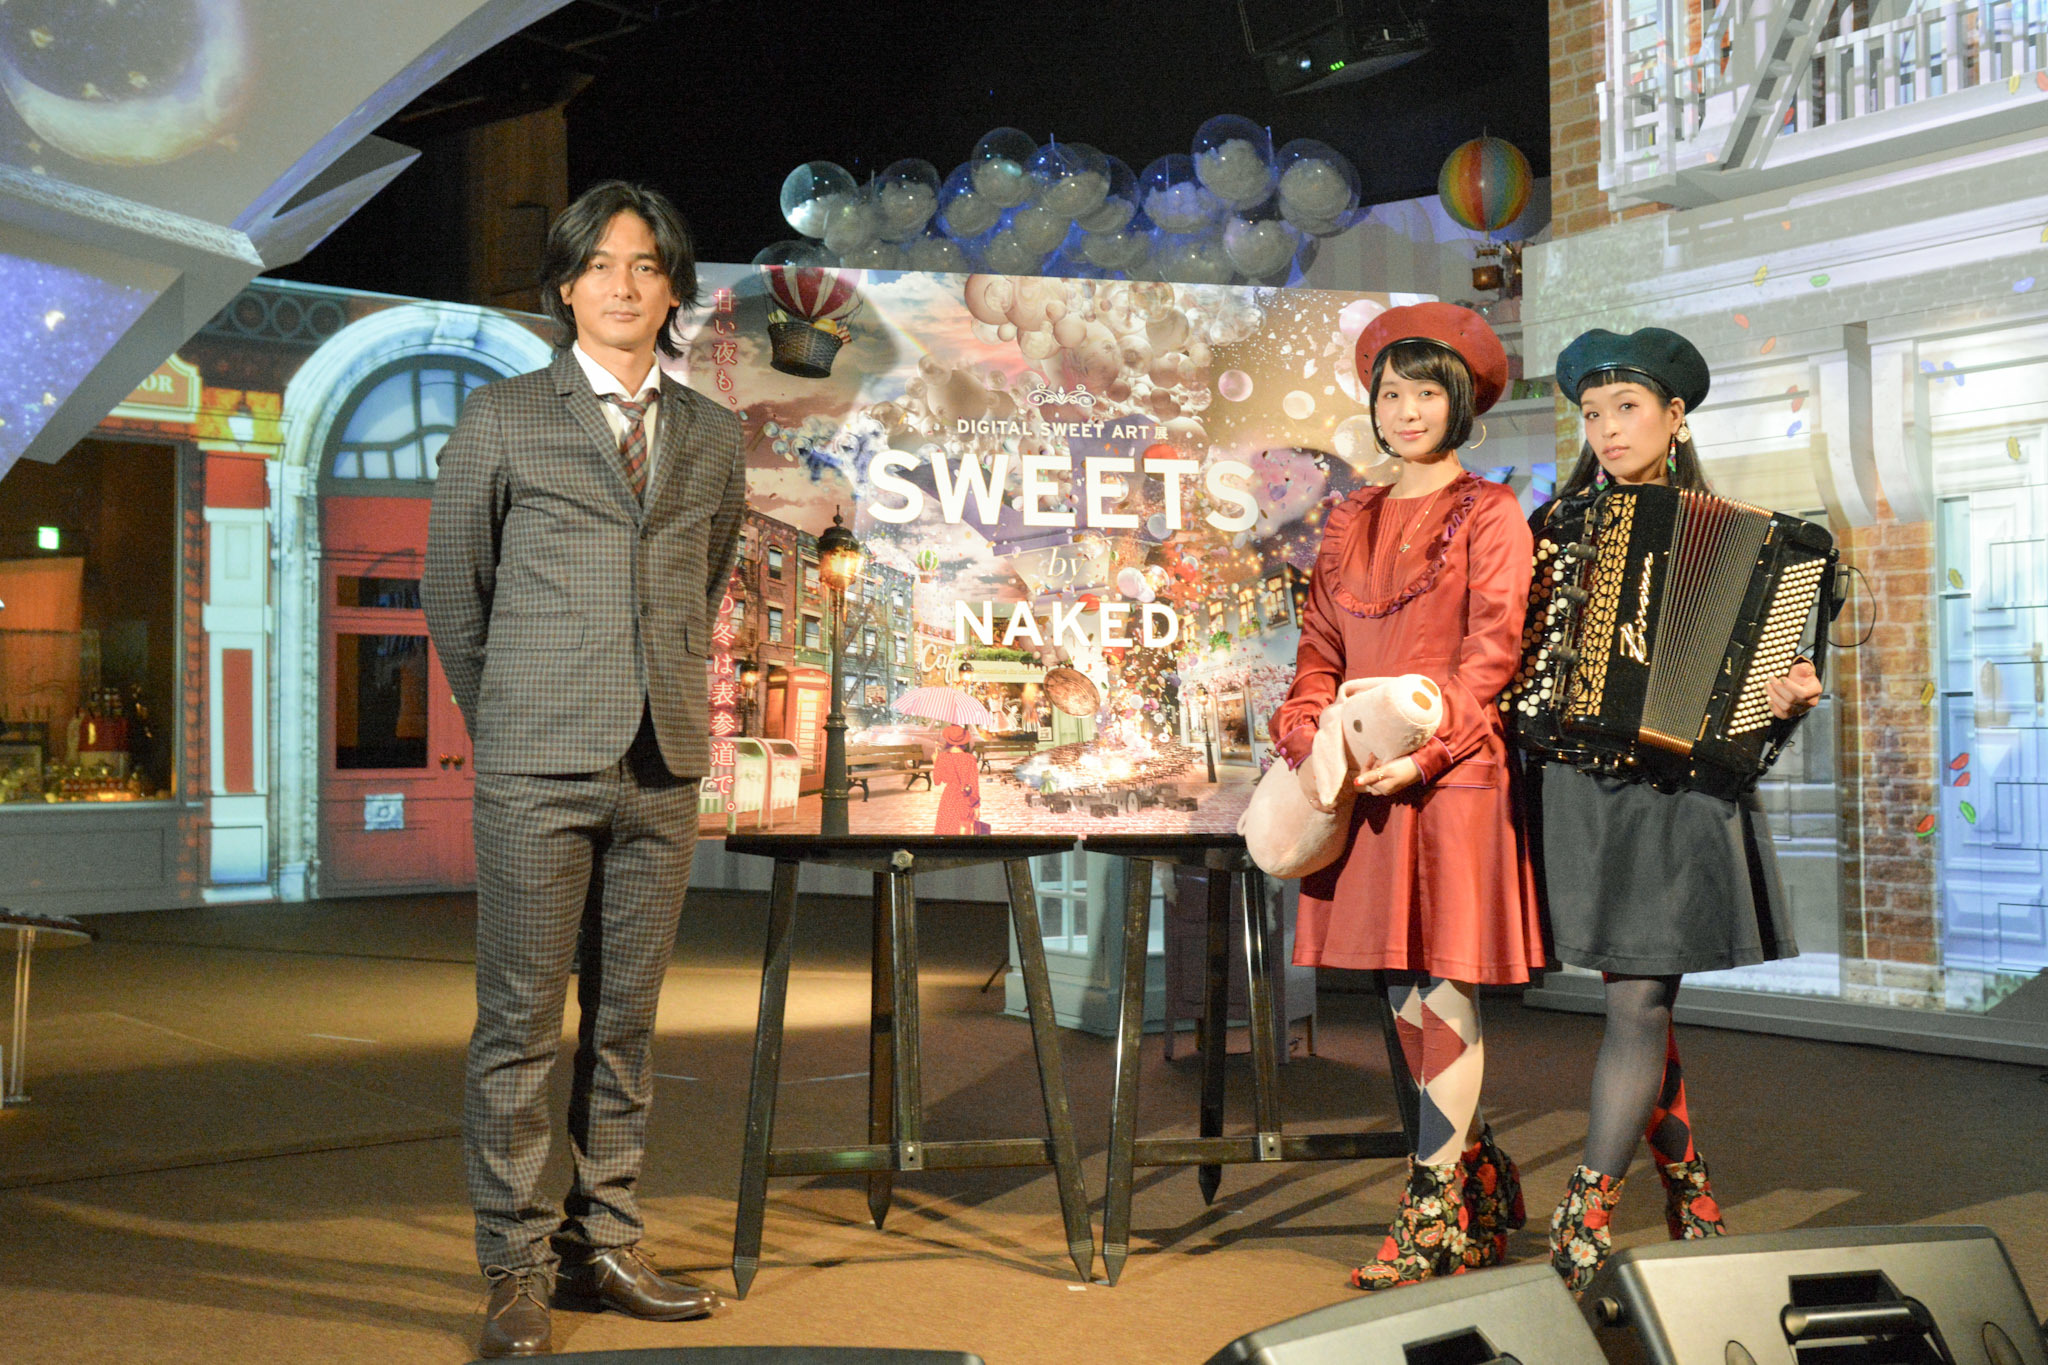 『SWEETS by NAKED』プレス向け内覧会